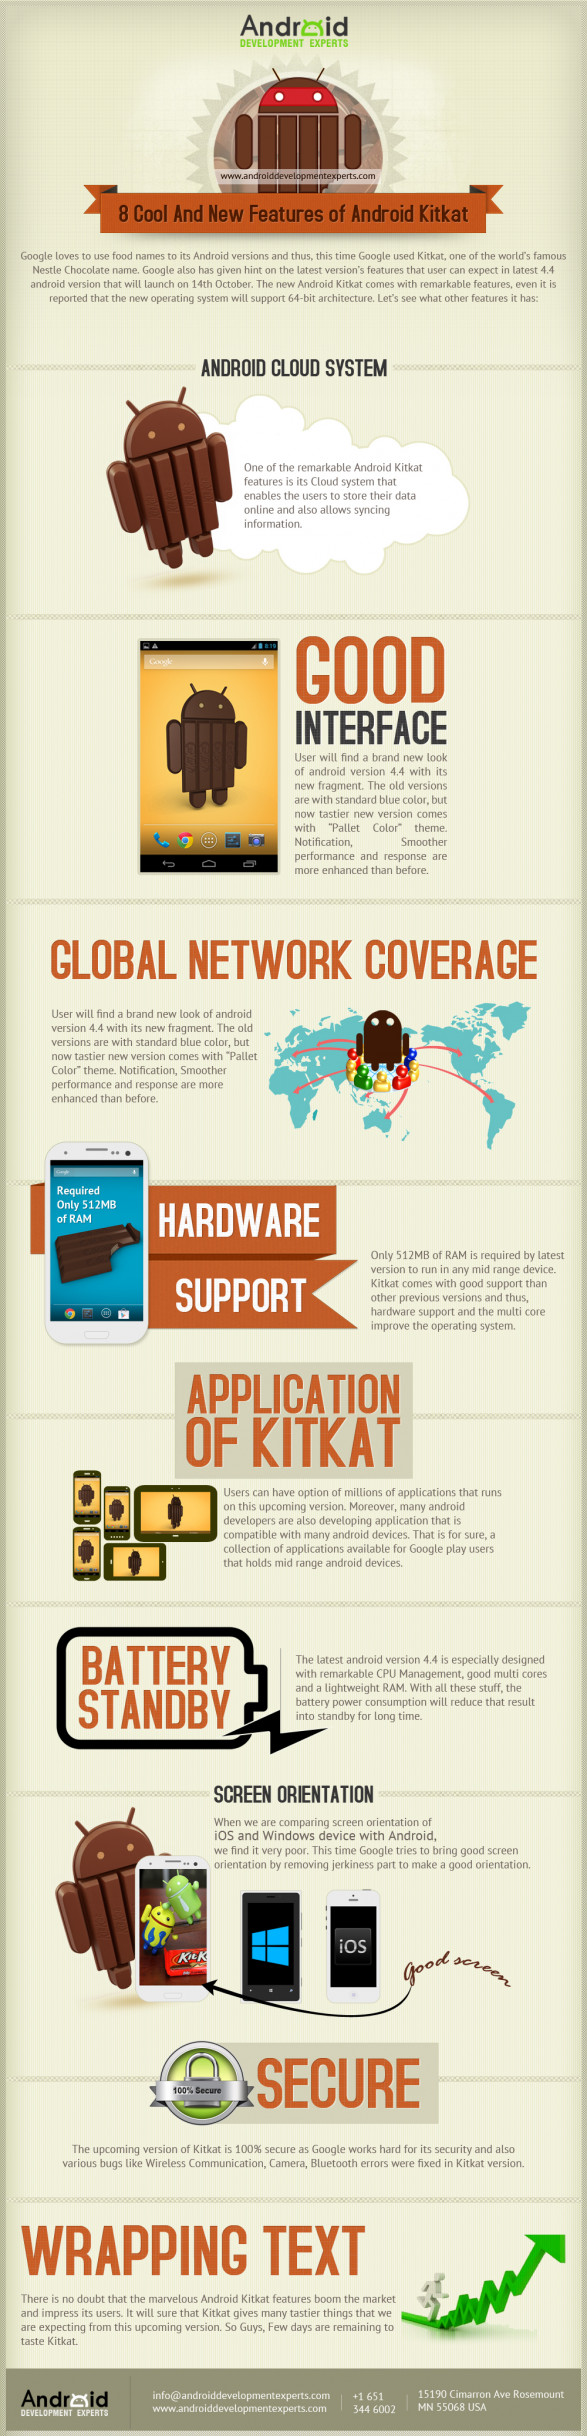 8 Cool And New Features of Android Kitkat